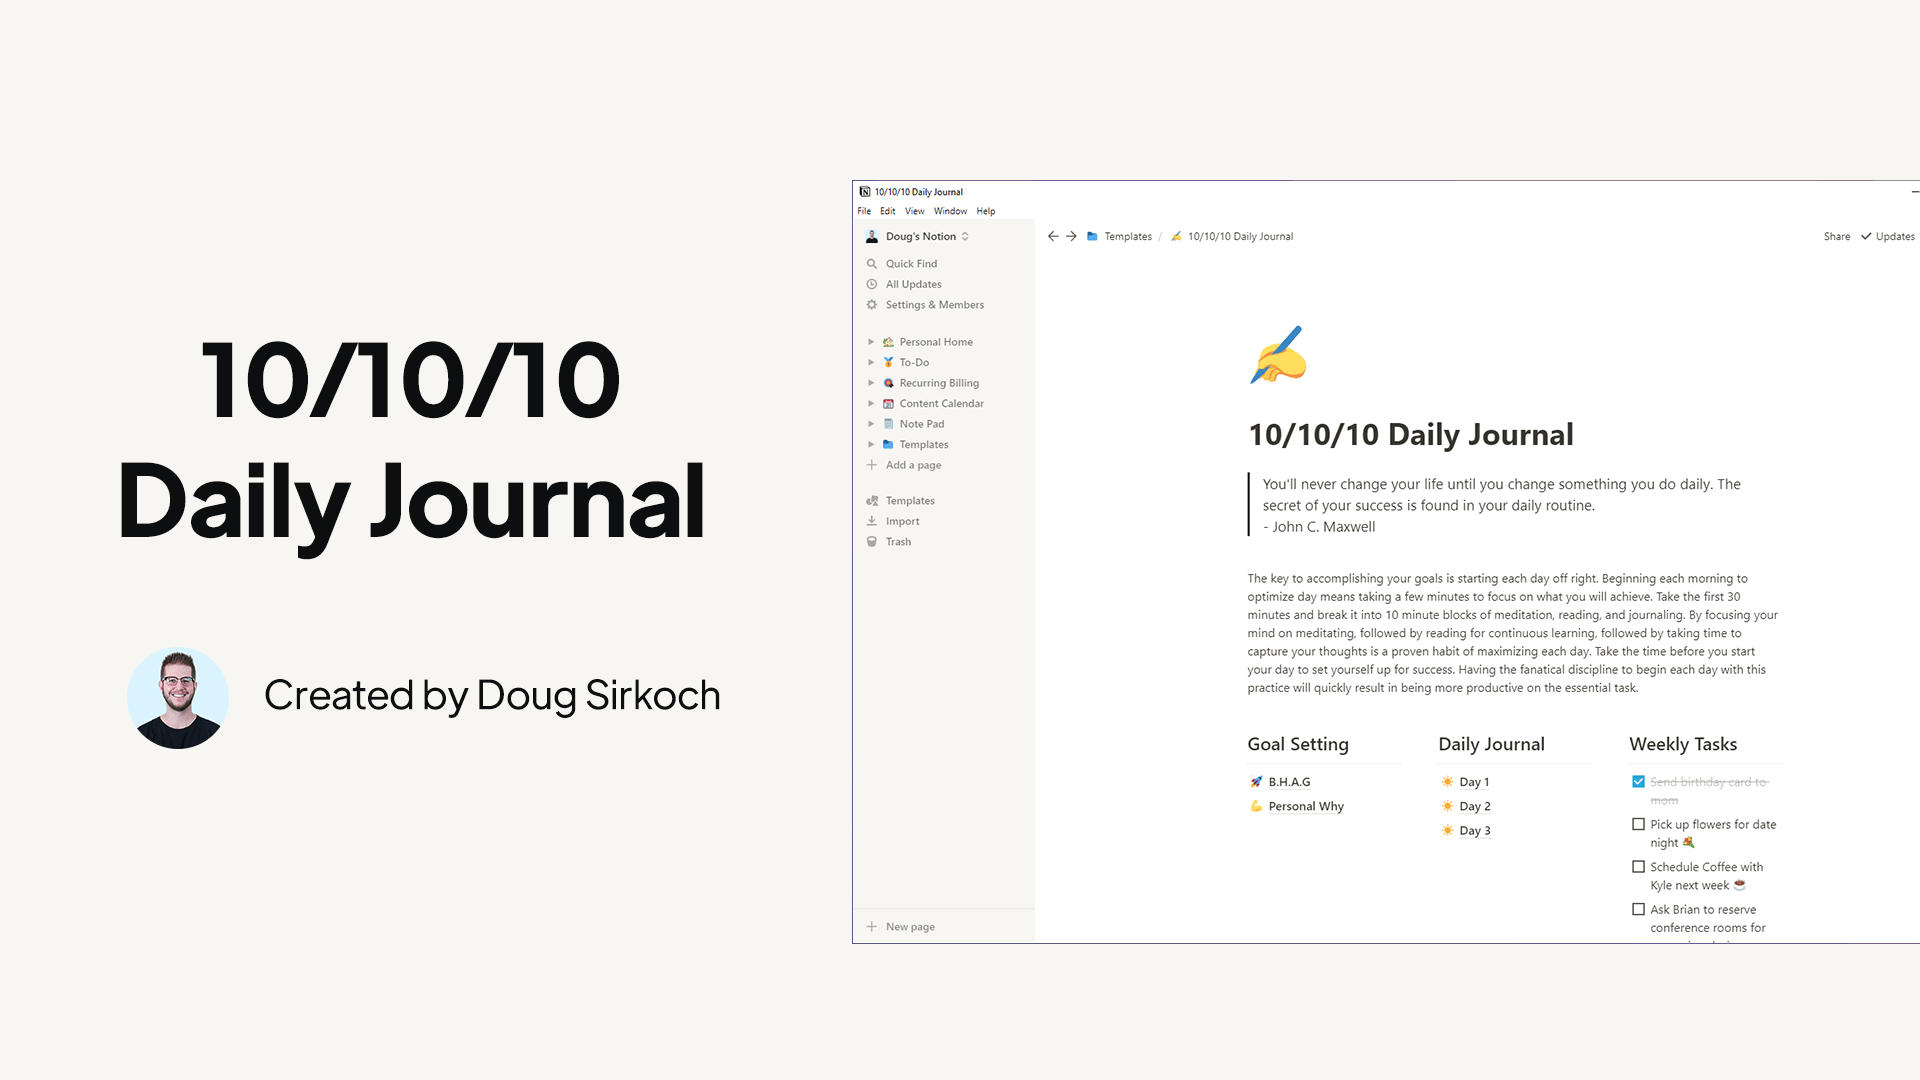 10/10/10 Daily Journal